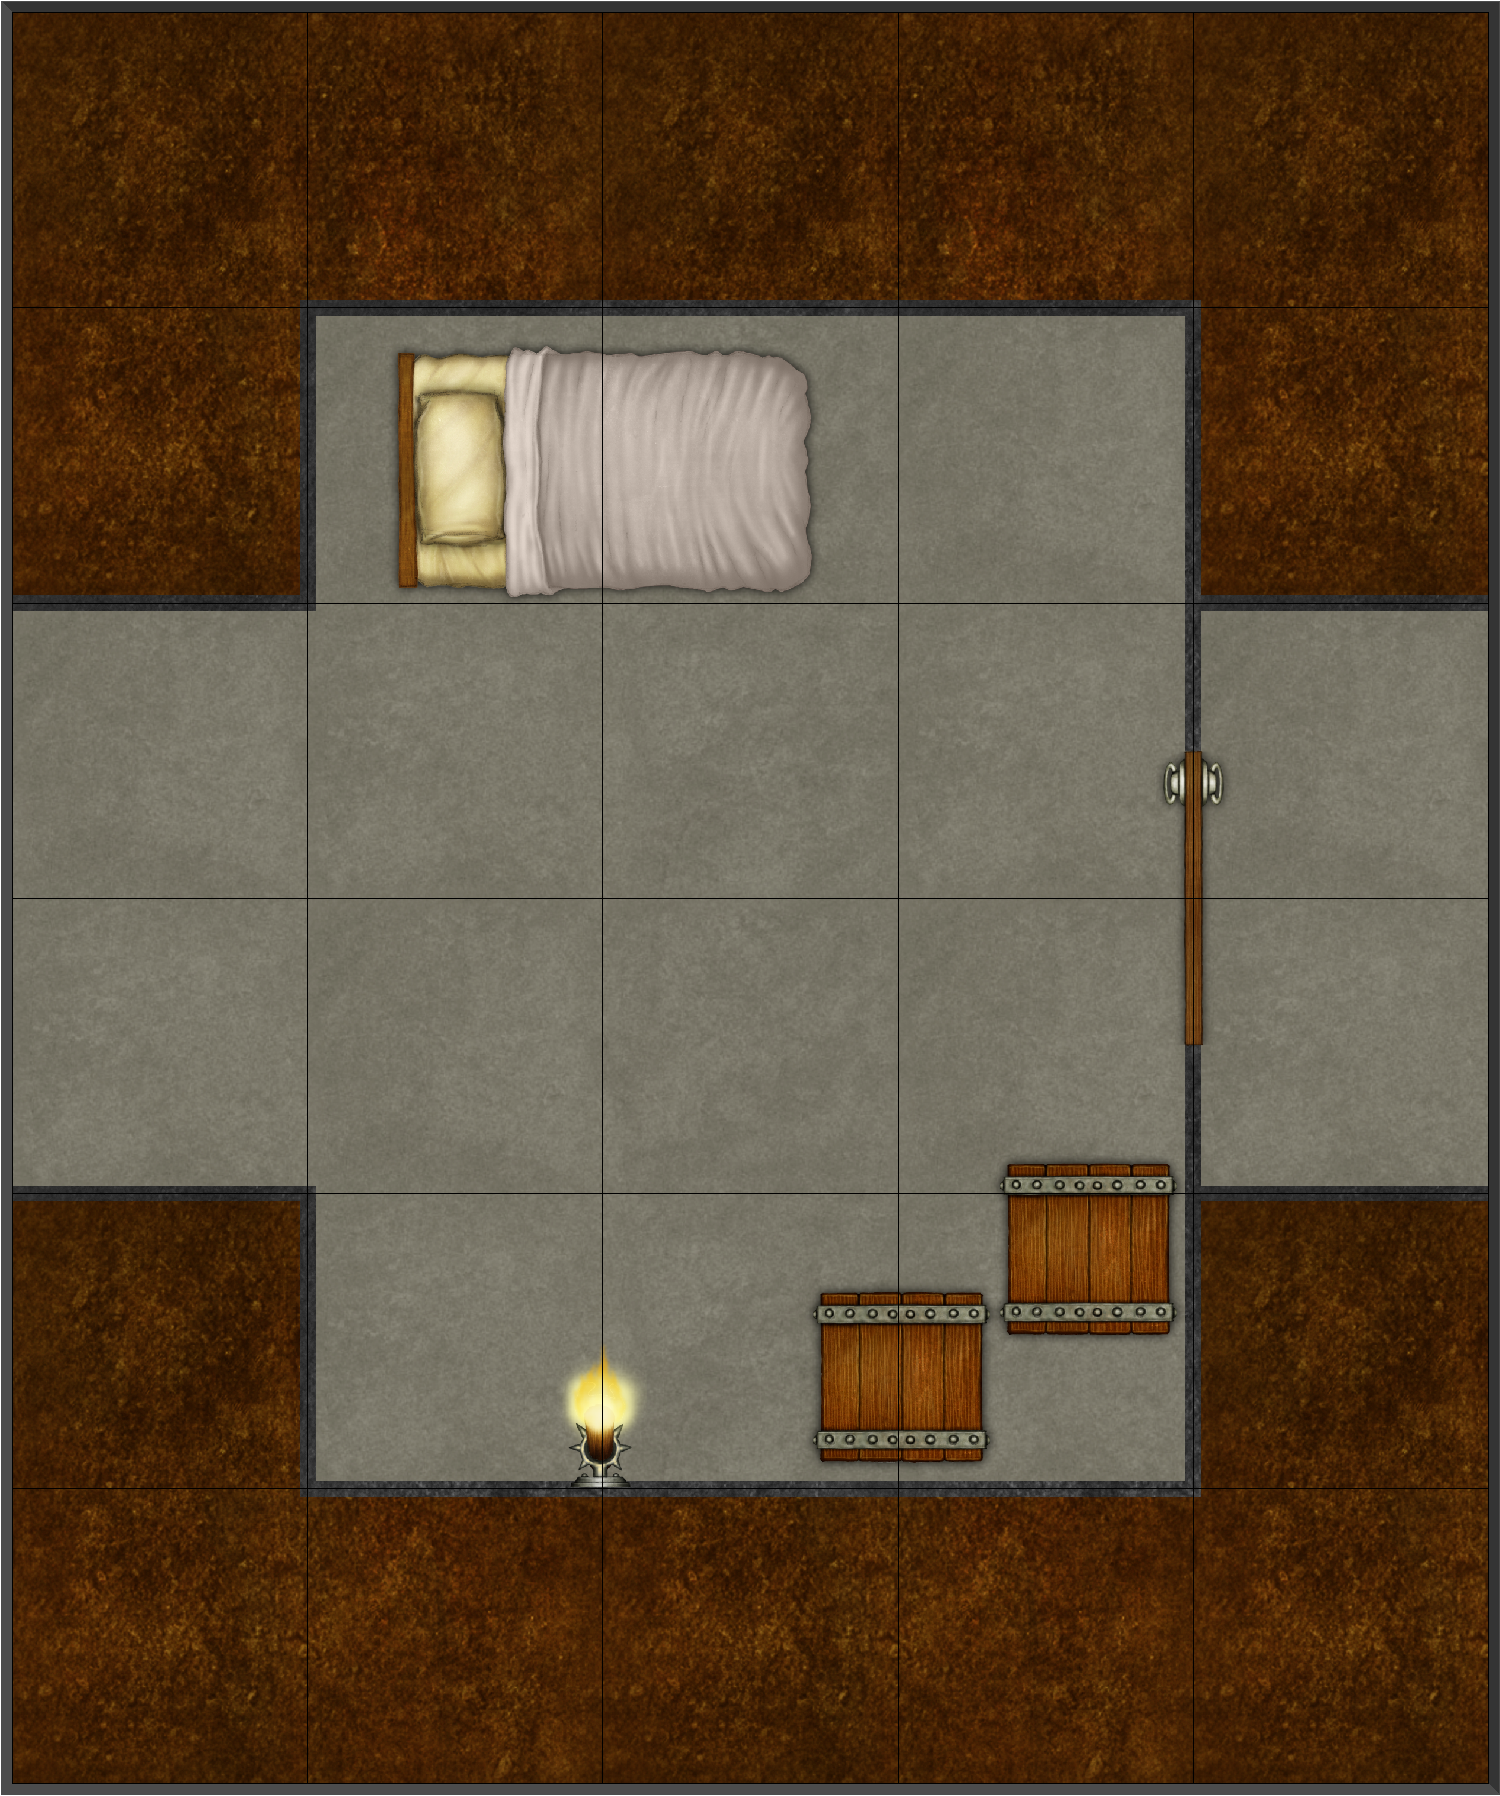 Effects Map Base a Simple DD3 map with a single room, an open corridor and a corridor sealed off by a door. In the room is a bed, two crates and a torch sconce. No effects have been turned on in this map, as it is the base of my exploration into dd3 effects.